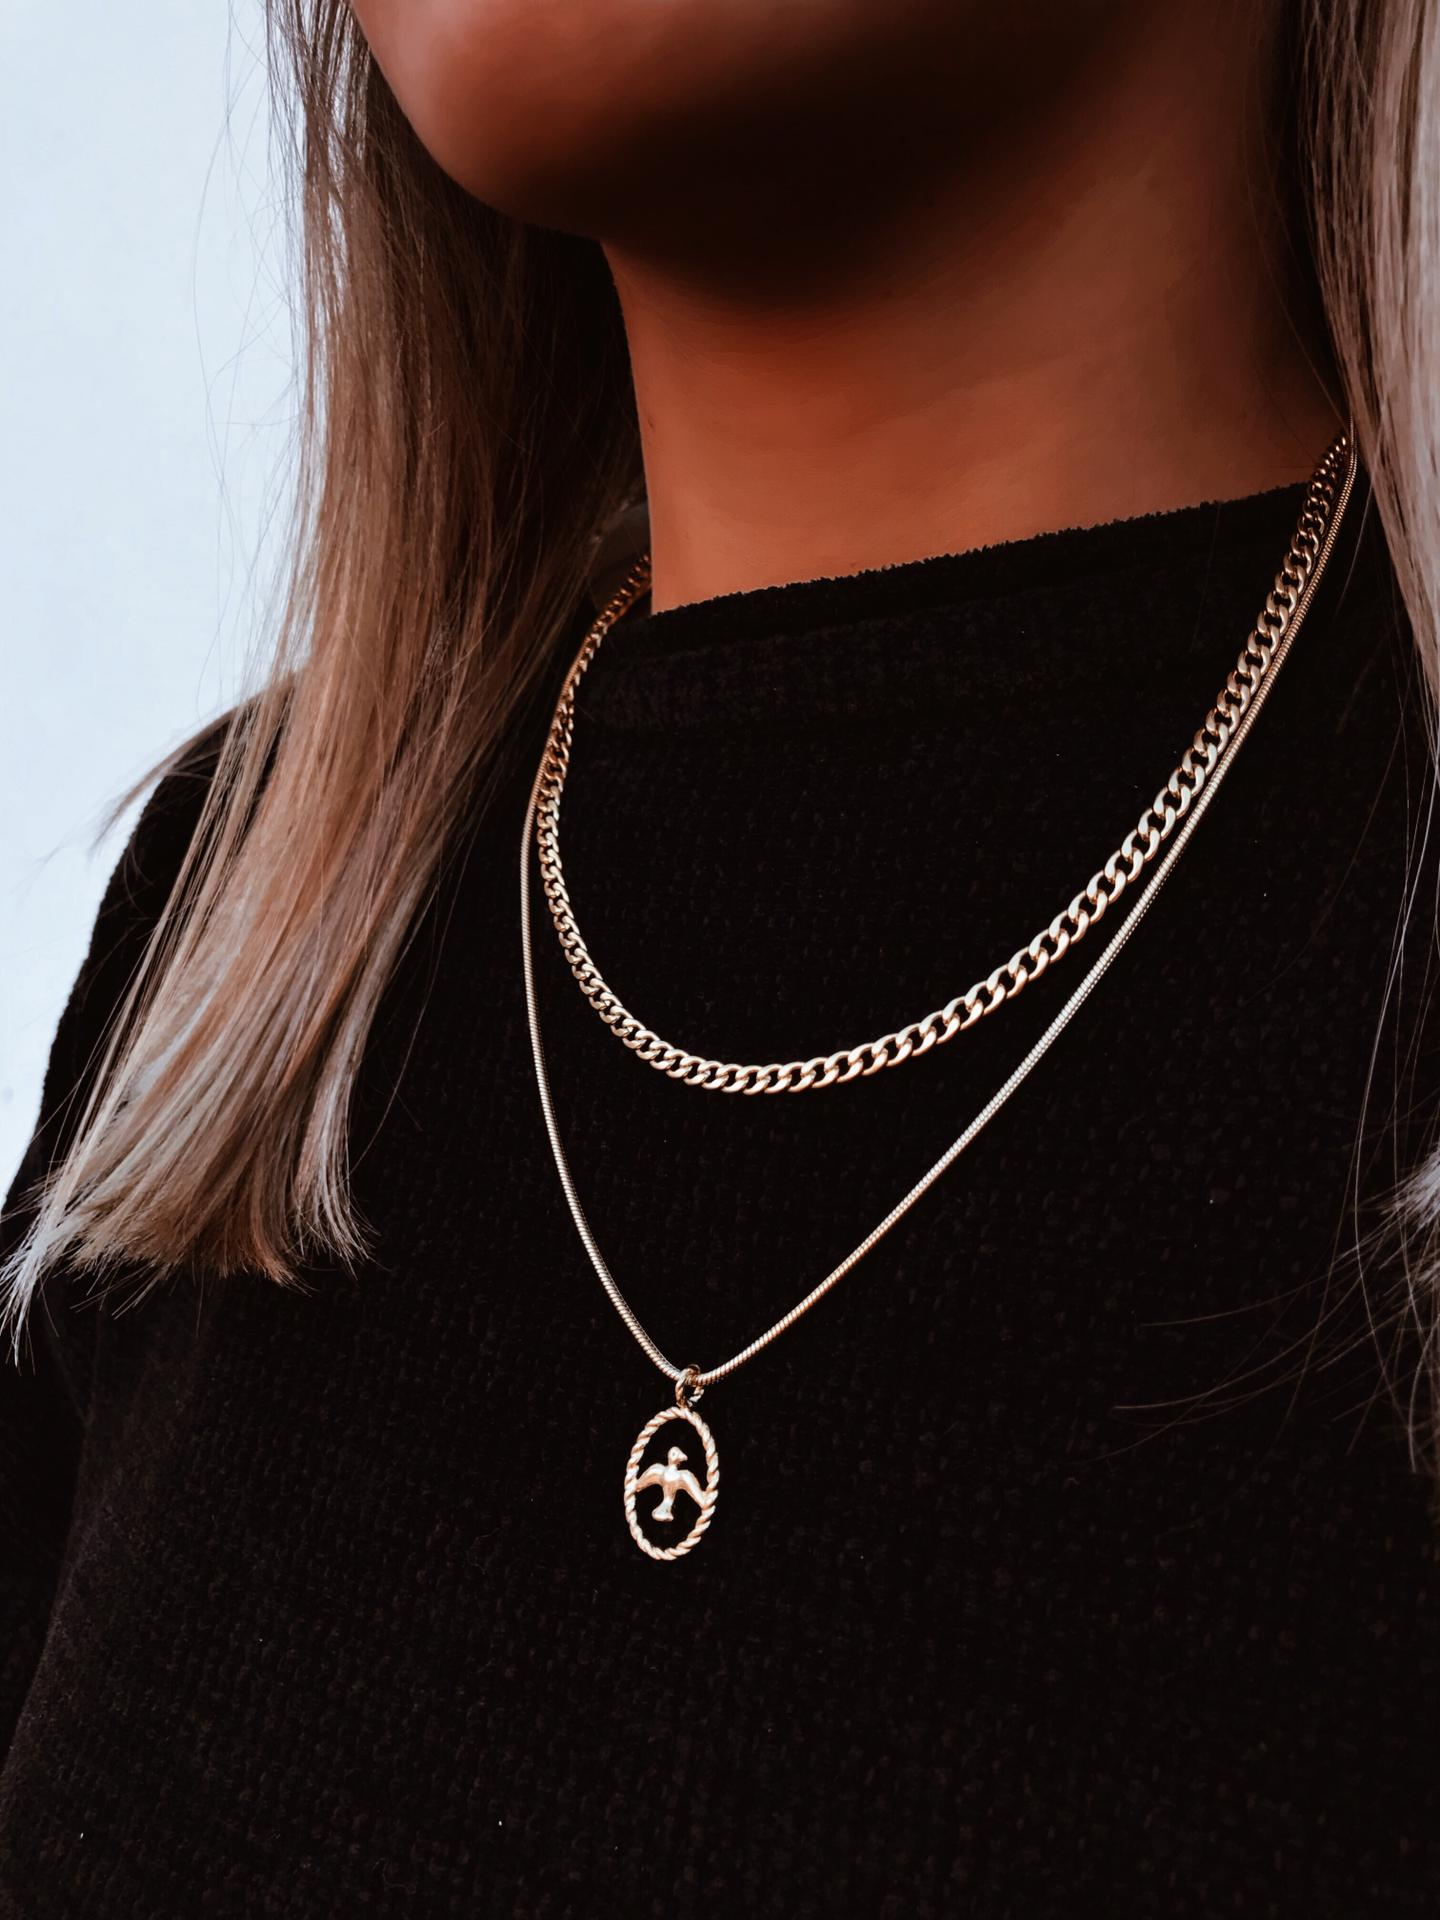 Colares em aço - Gold Chain with Swallow